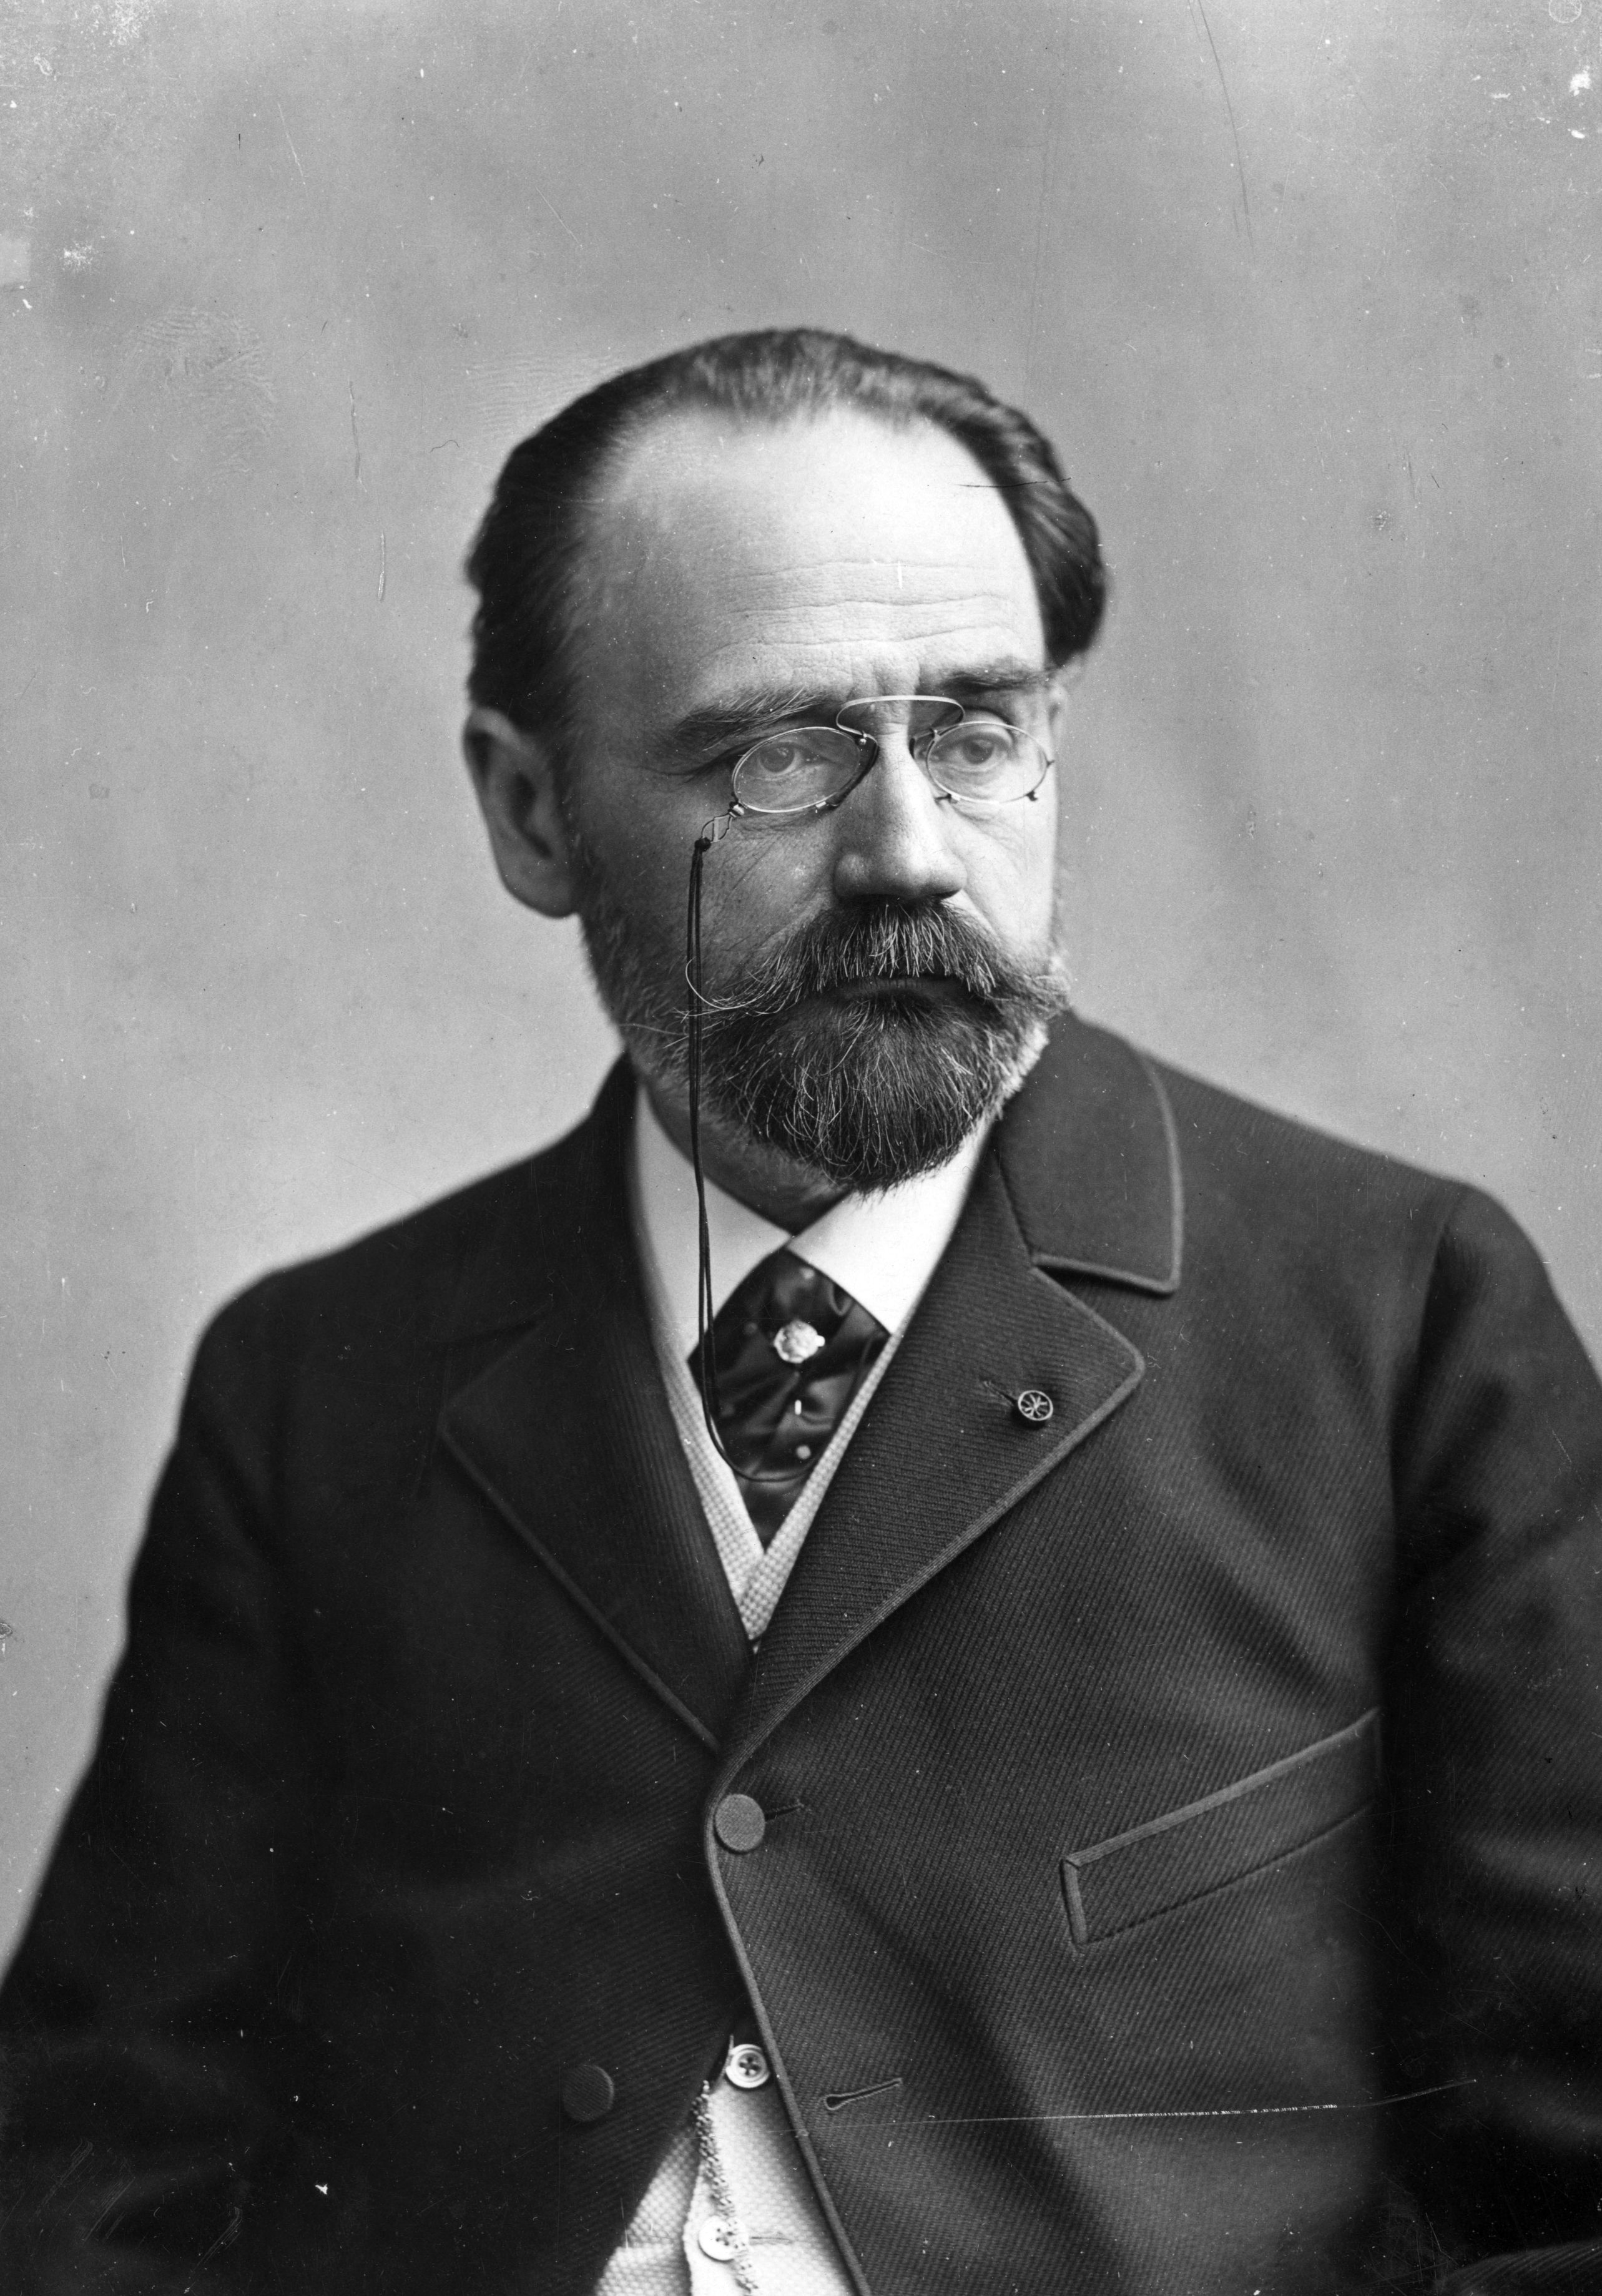 emile zola on the role of the novelist as a pathologist dissecting life within the book A sister publication of artforum, bookforum brings incisive reviews of the latest titles, author interviews, and commentary about current and coming trends and ideas being debated by some of the most interesting writers of our time.